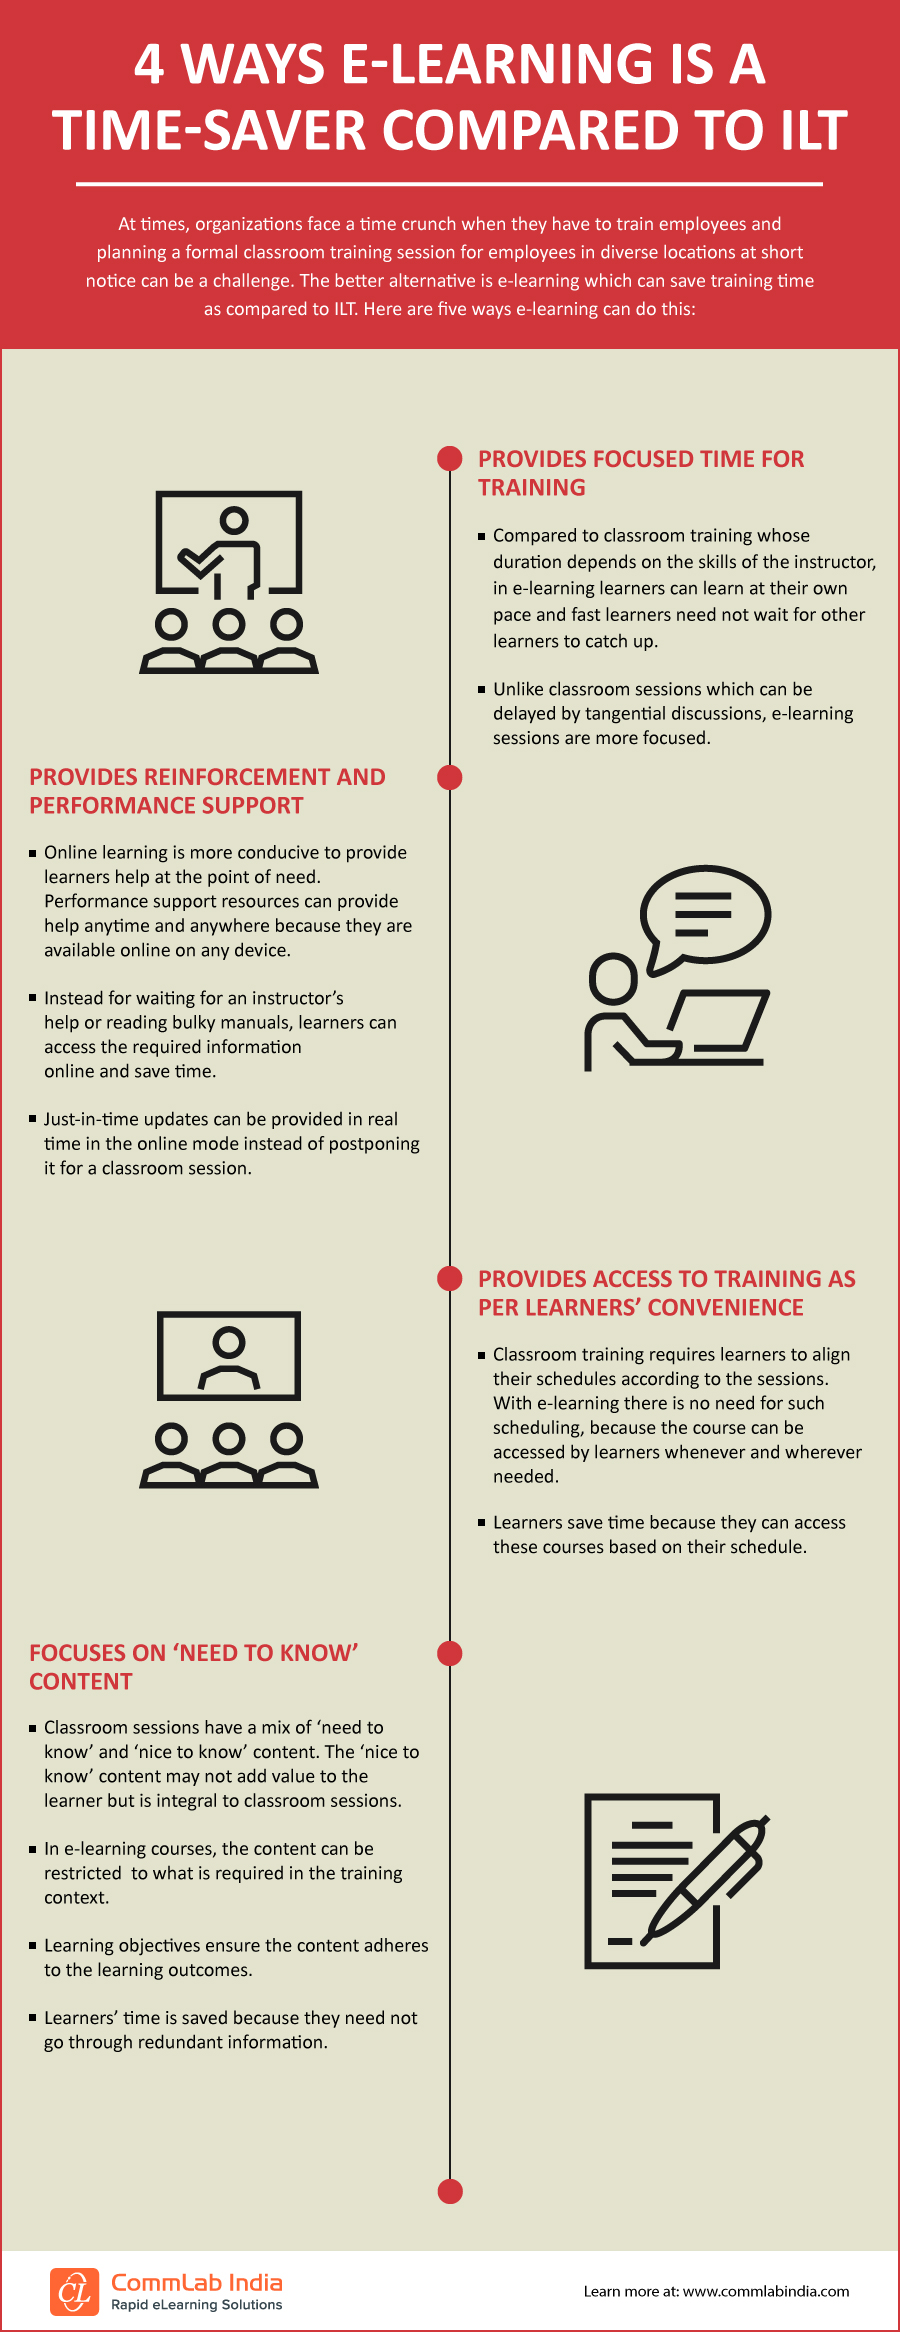 4 Ways E-learning is a Time-saver Compared to ILT [Infographic]